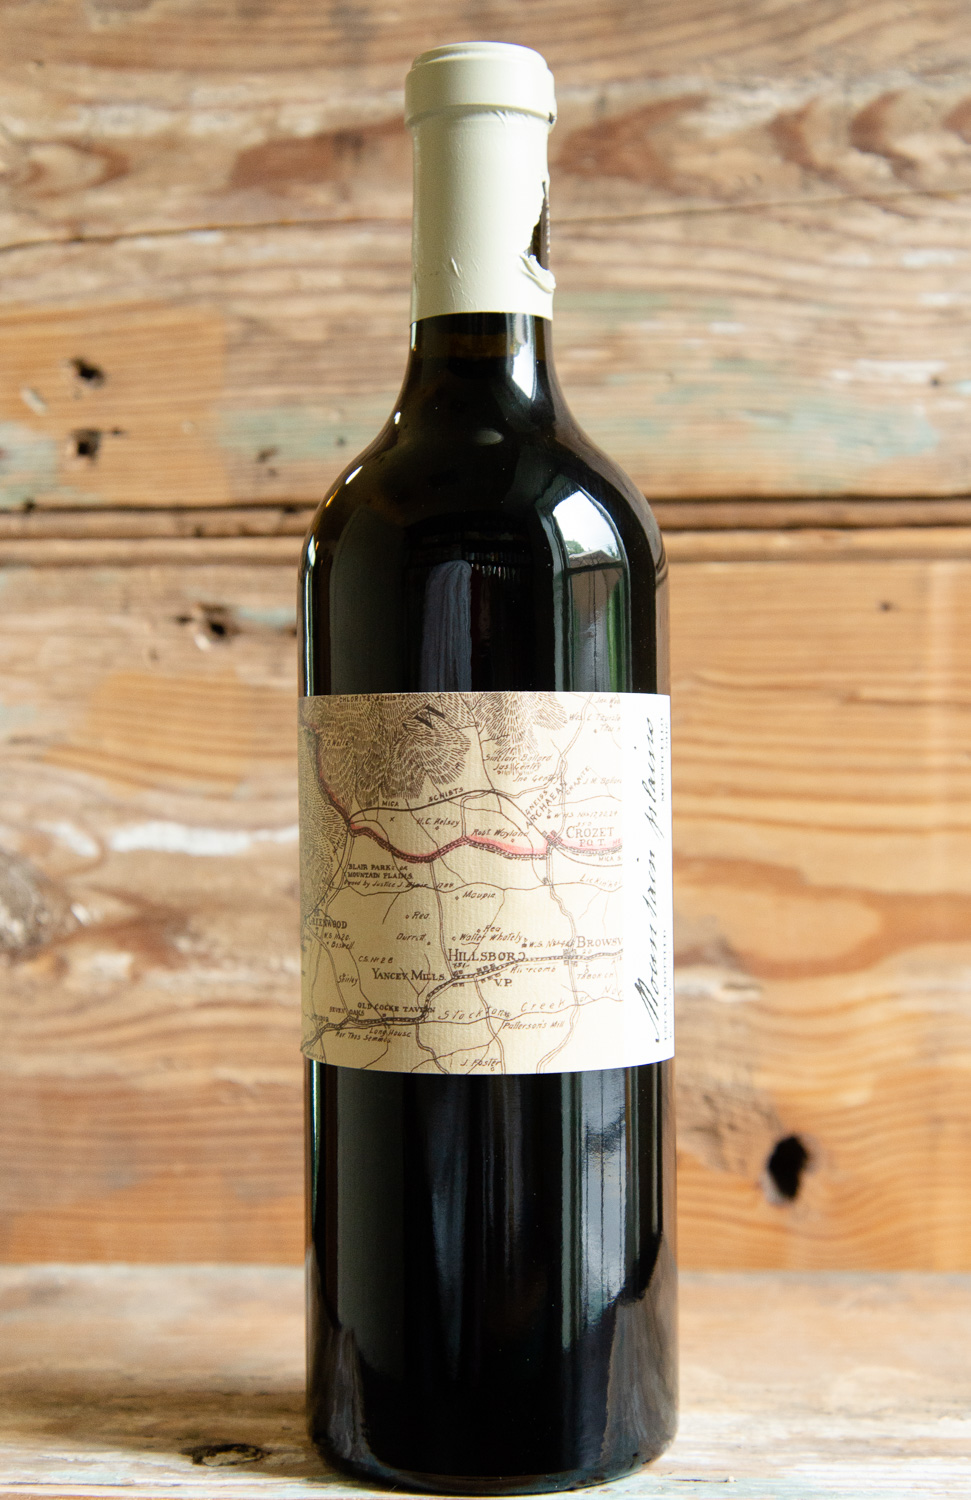 King Family Mountain Plains 2016 - Origin: MonticelloRetail: $67.95 | Sale $61.15King Family Vineyards is a family owned and operated winery located at the foothills of the Blue Ridge Mountains in Crozet, Virginia just fifteen minutes from Charlottesville. The name Mountain Plains was first written in a deed drafted in 1773 by Thomas Jefferson to transfer the ownership of a land grant farm established in 1737. After careful selection of the ripest fruit from their best vineyard blocks, the grapes were hand-sorted and then de-stemmed. After pressing, the wines were aged separately for 22 months in new barrels from the Tronçais oak forest in Central France, specially selected for their tight grained wood to impart fine tannins, and a well-integrated oak profile. Rich, dense layers of complexity and a powerful sense of structure promises a wine that will reward extended cellaring. Enjoy now, through 2025 and beyond. Bordeaux Blend2019 Monticello Cup Wine Gold Winner